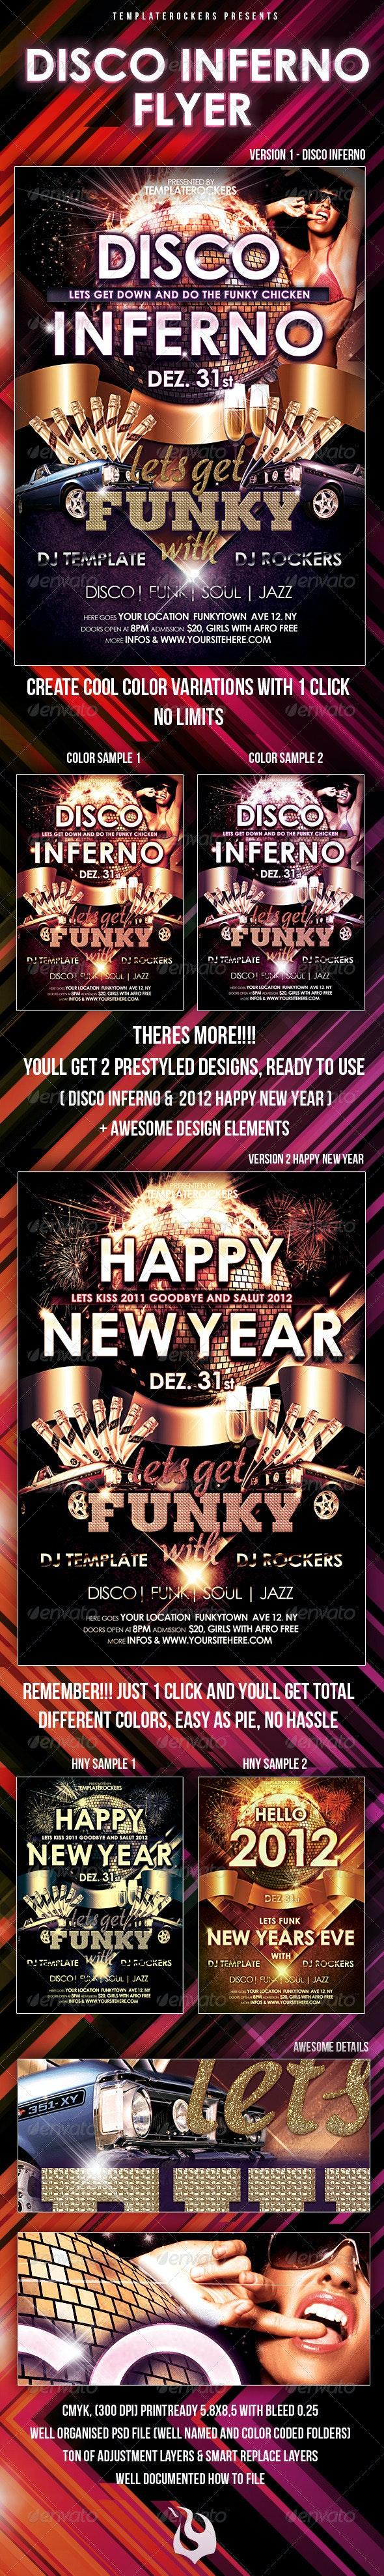 Disco Inferno, Happy New Year Flyer 2 Versions  - Clubs & Parties Events